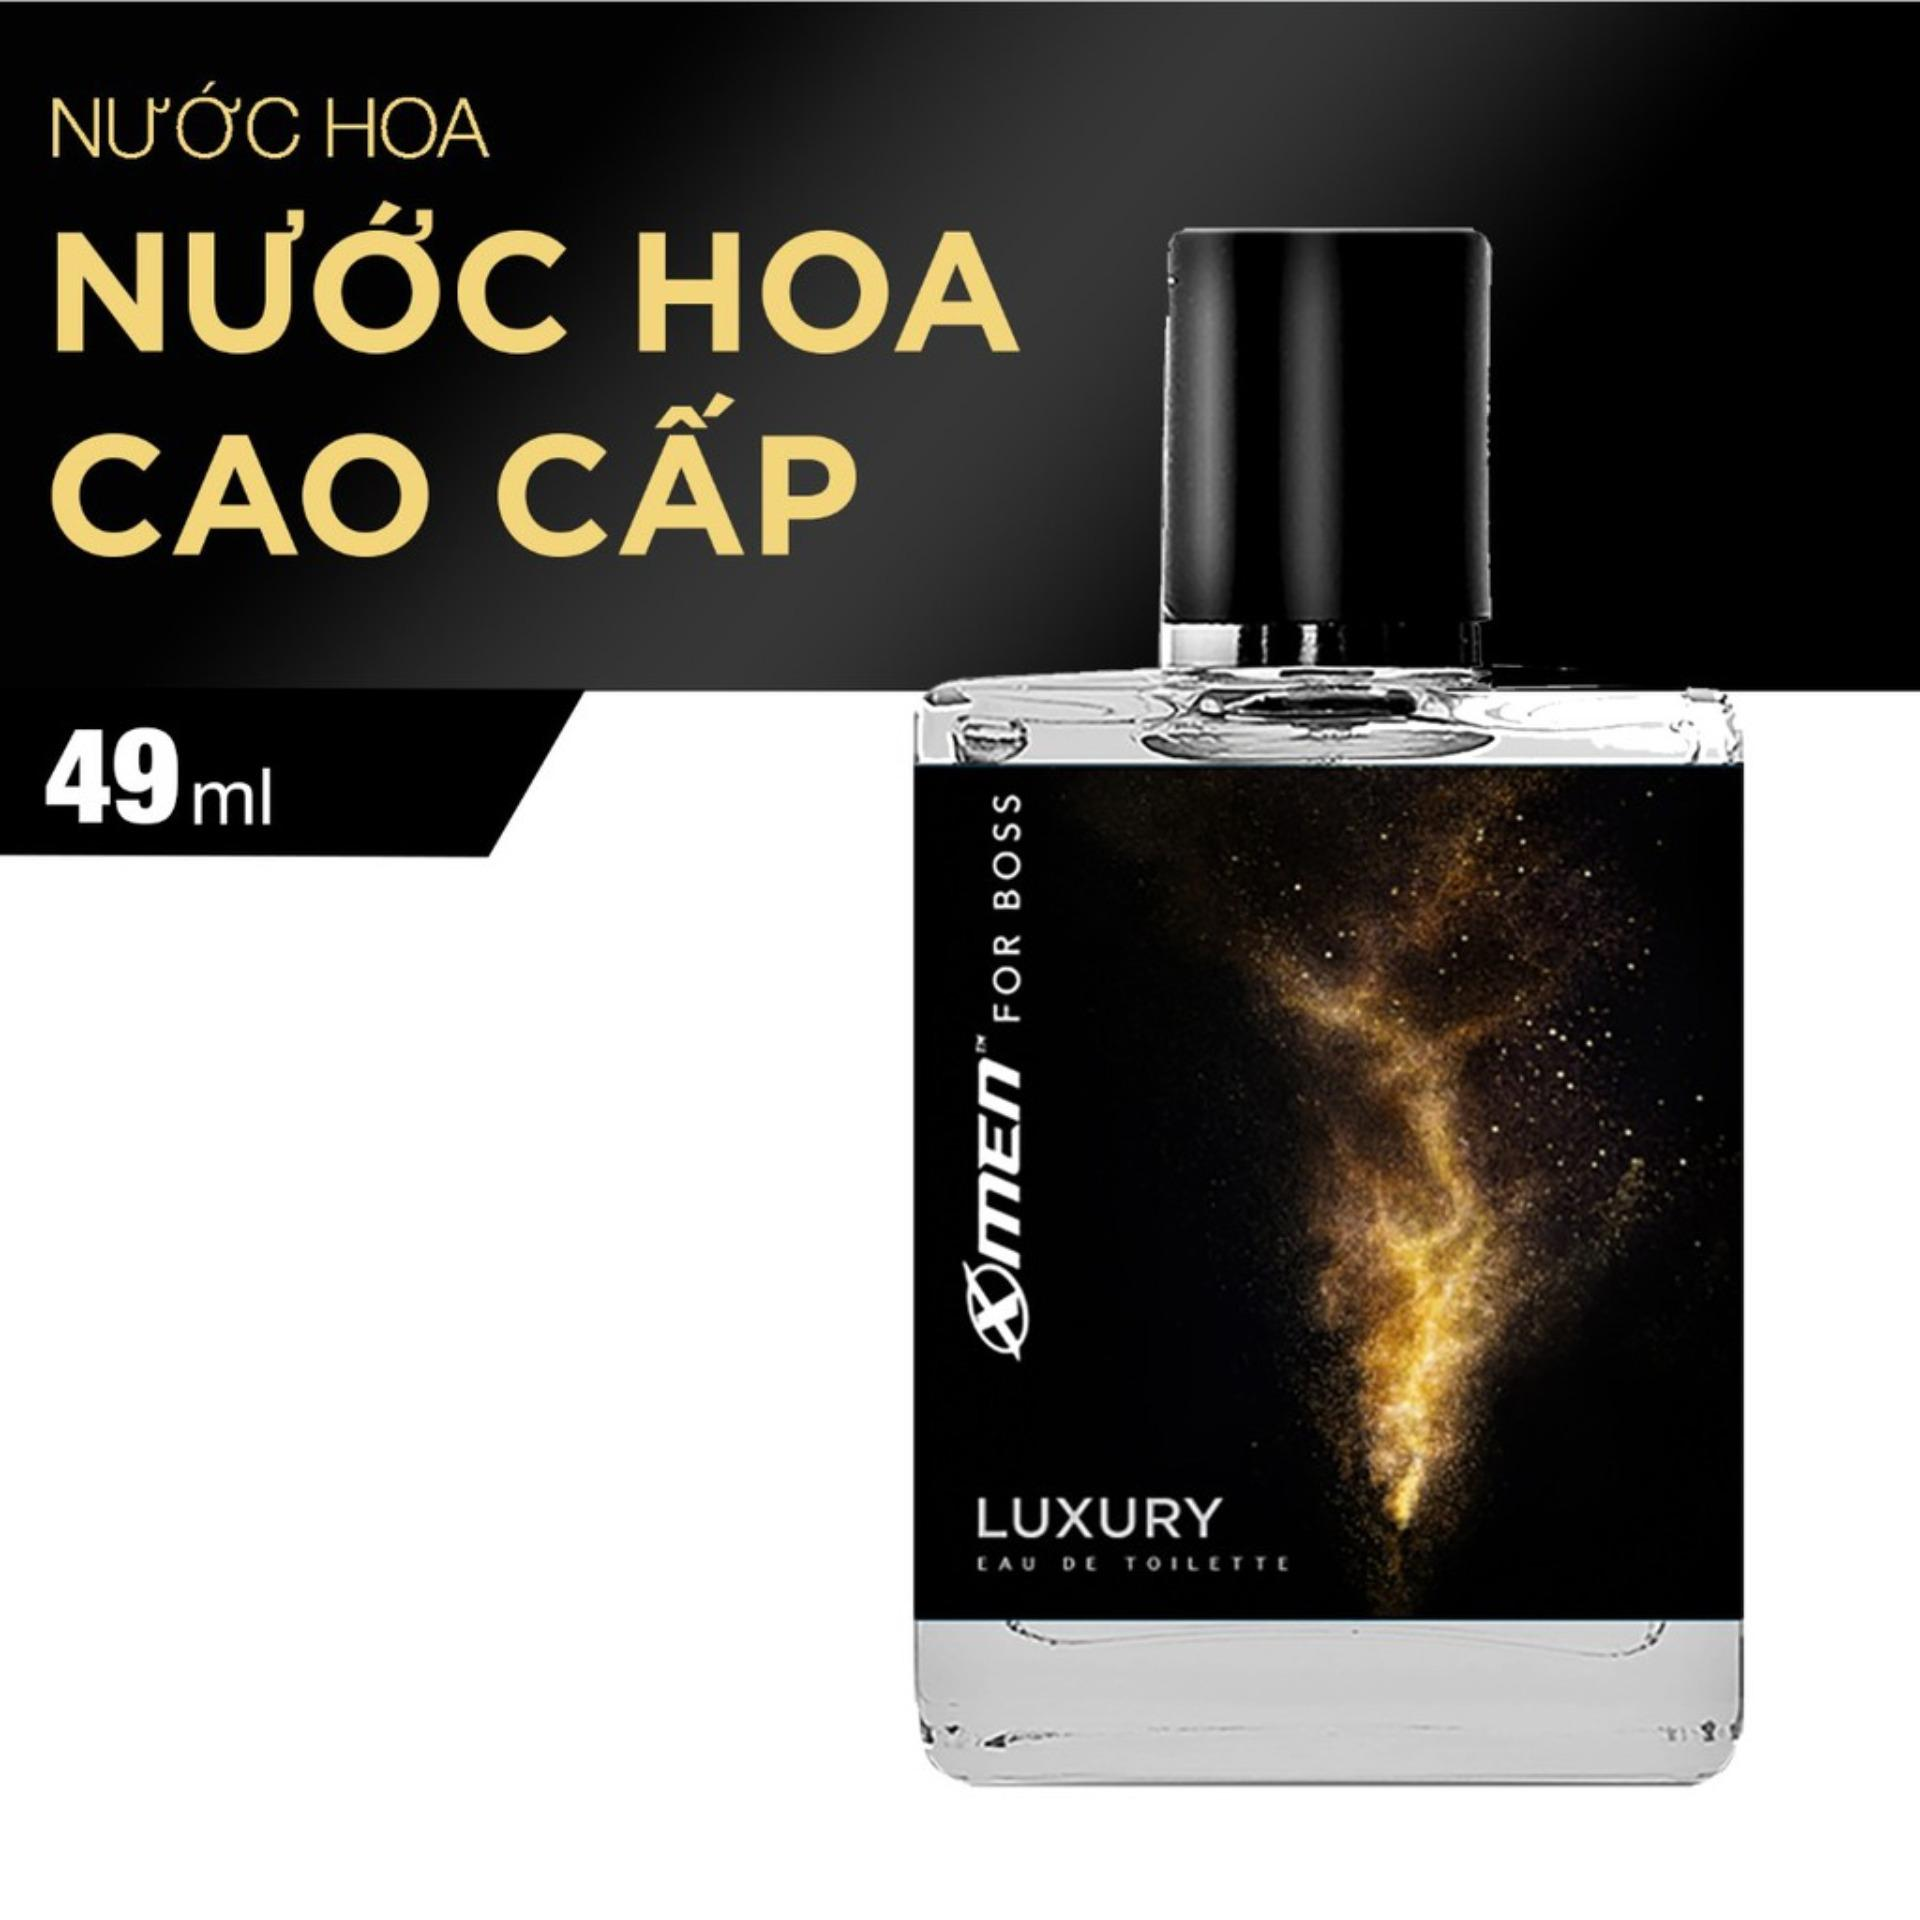 Nước hoa X-Men for Boss Motion, Luxury, Intense - chai 49ml